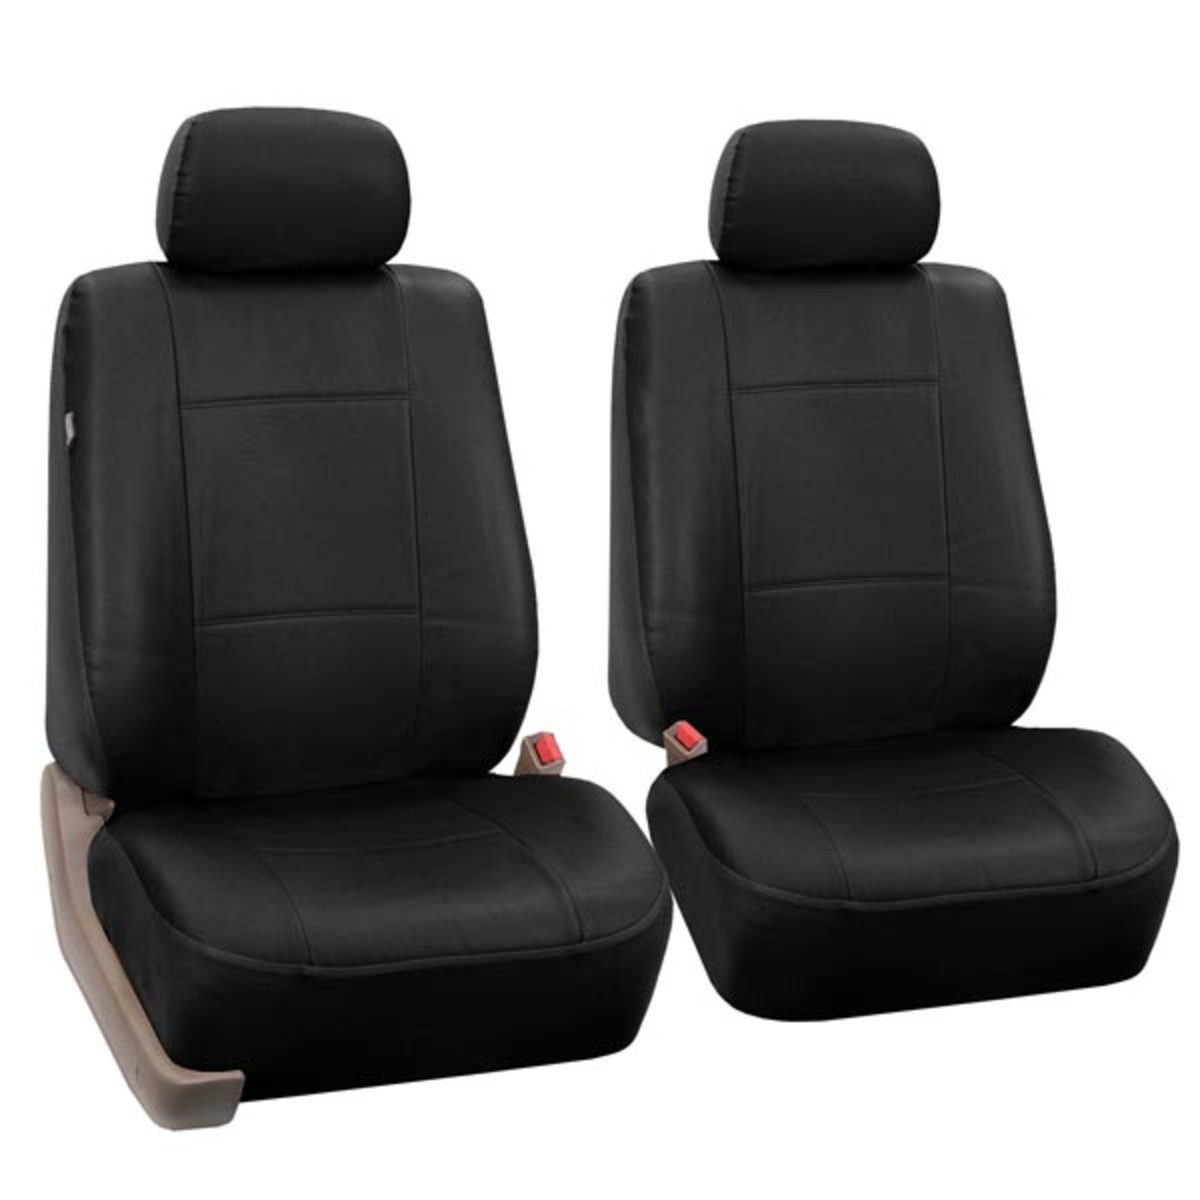 Premium PU Leather Seat Covers - Front